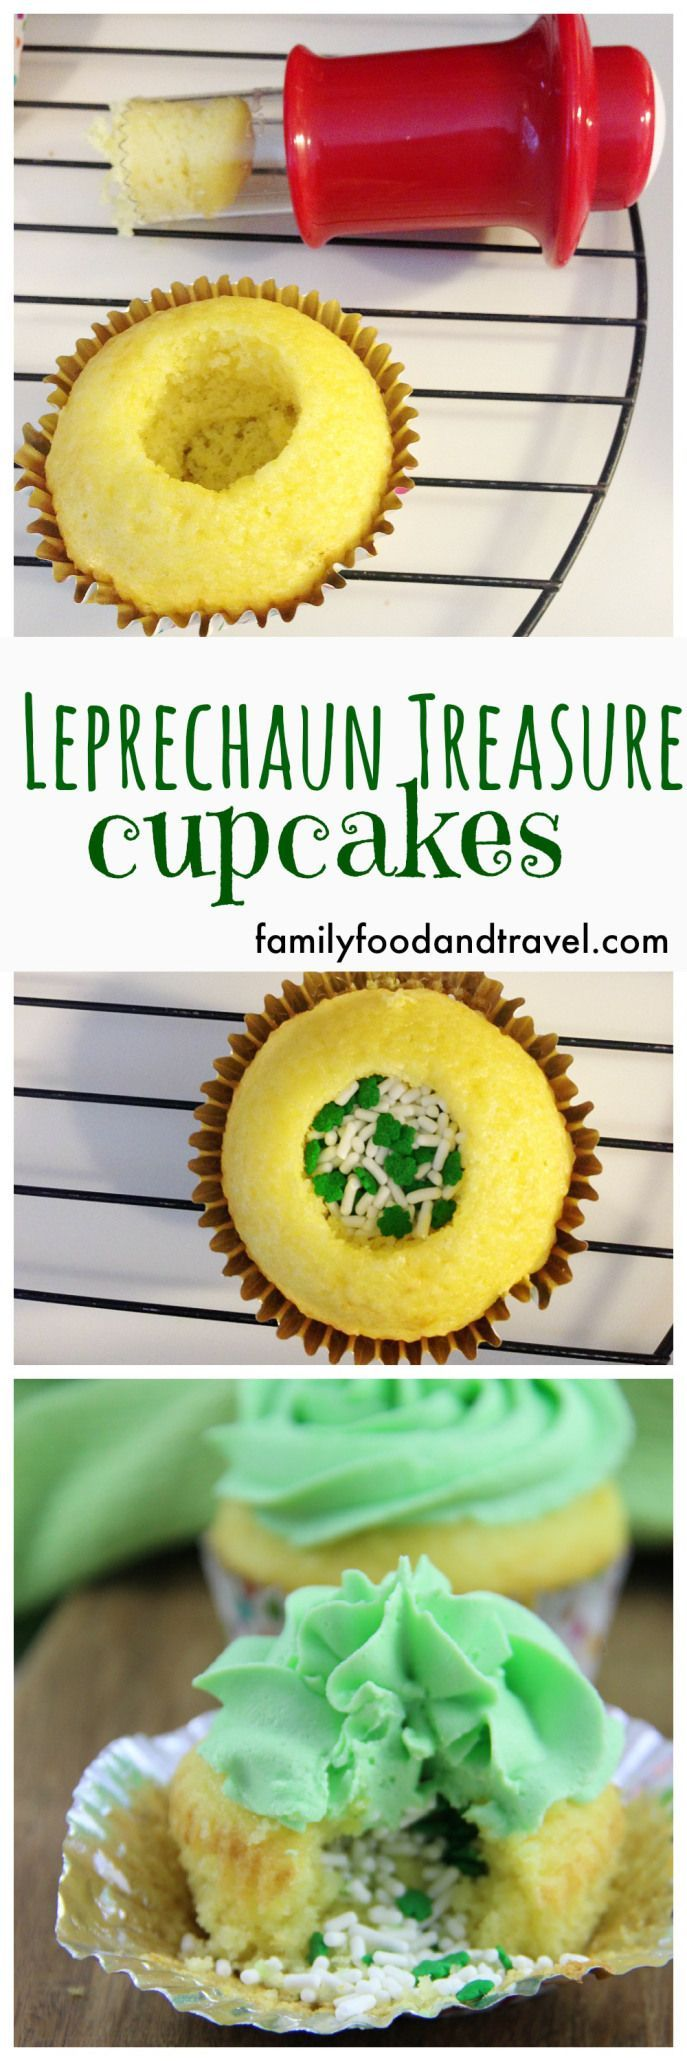 St. Patrick's Day Leprechaun Treasure Cupcakes - These cupcakes are filled with hidden treasure after they are baked for a special surprise when you bite into them!